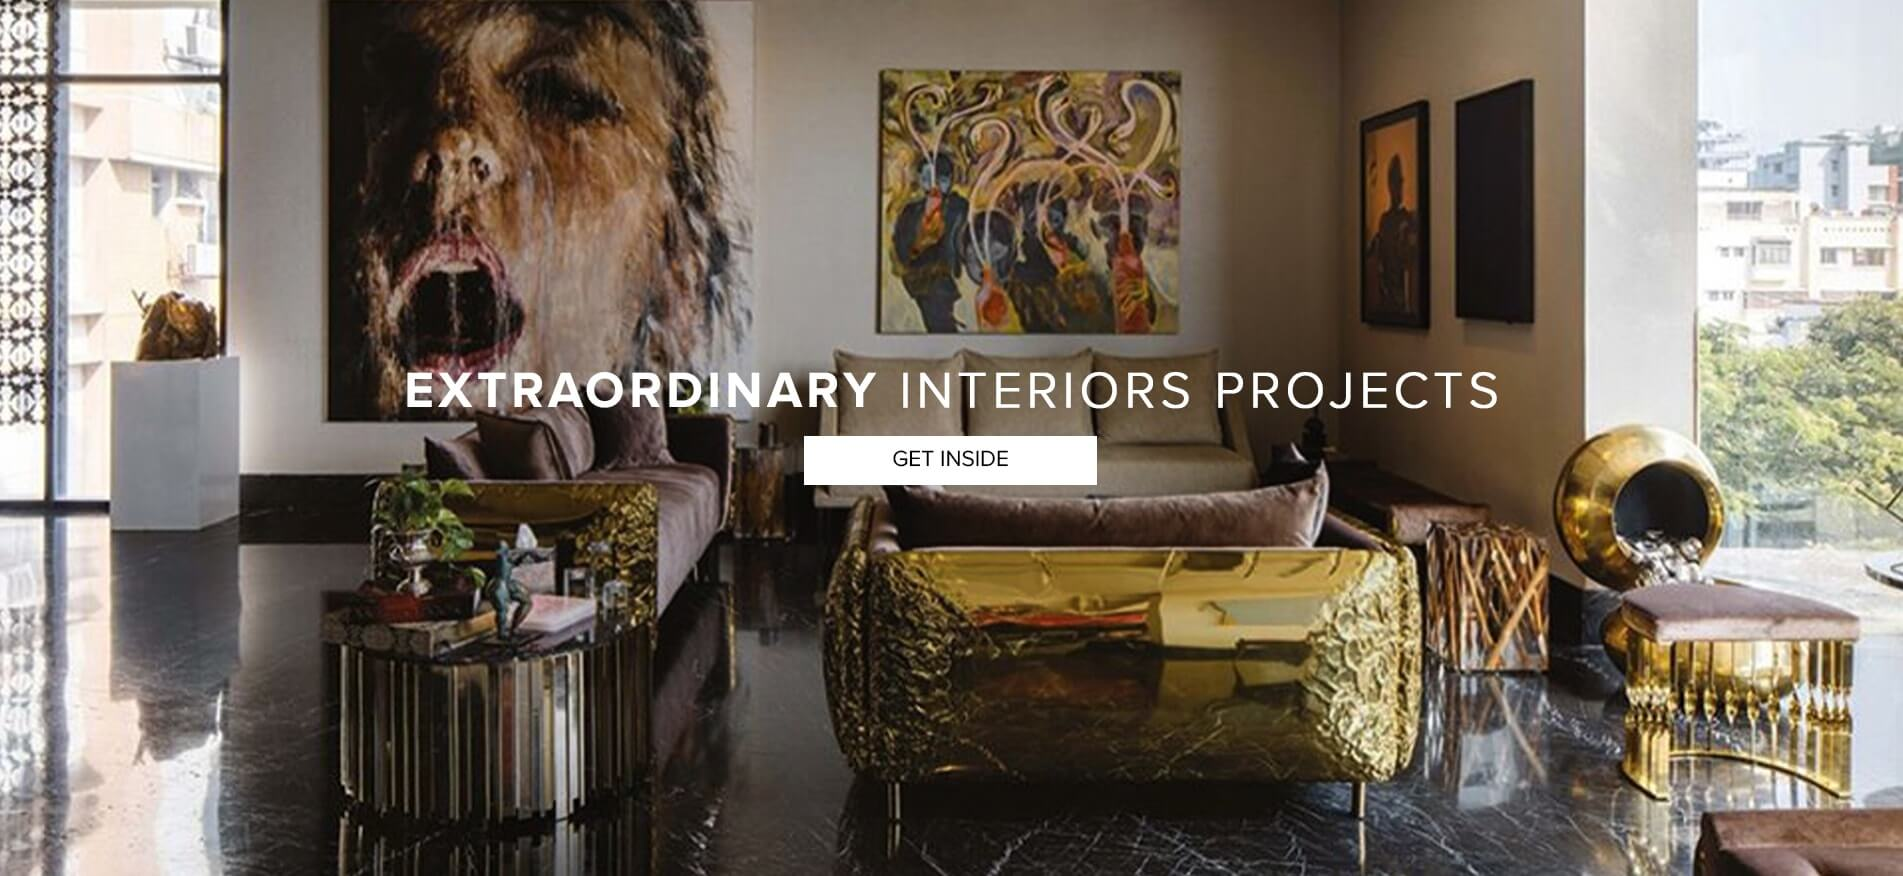 Extraordinary Interiors Project - Get Inside